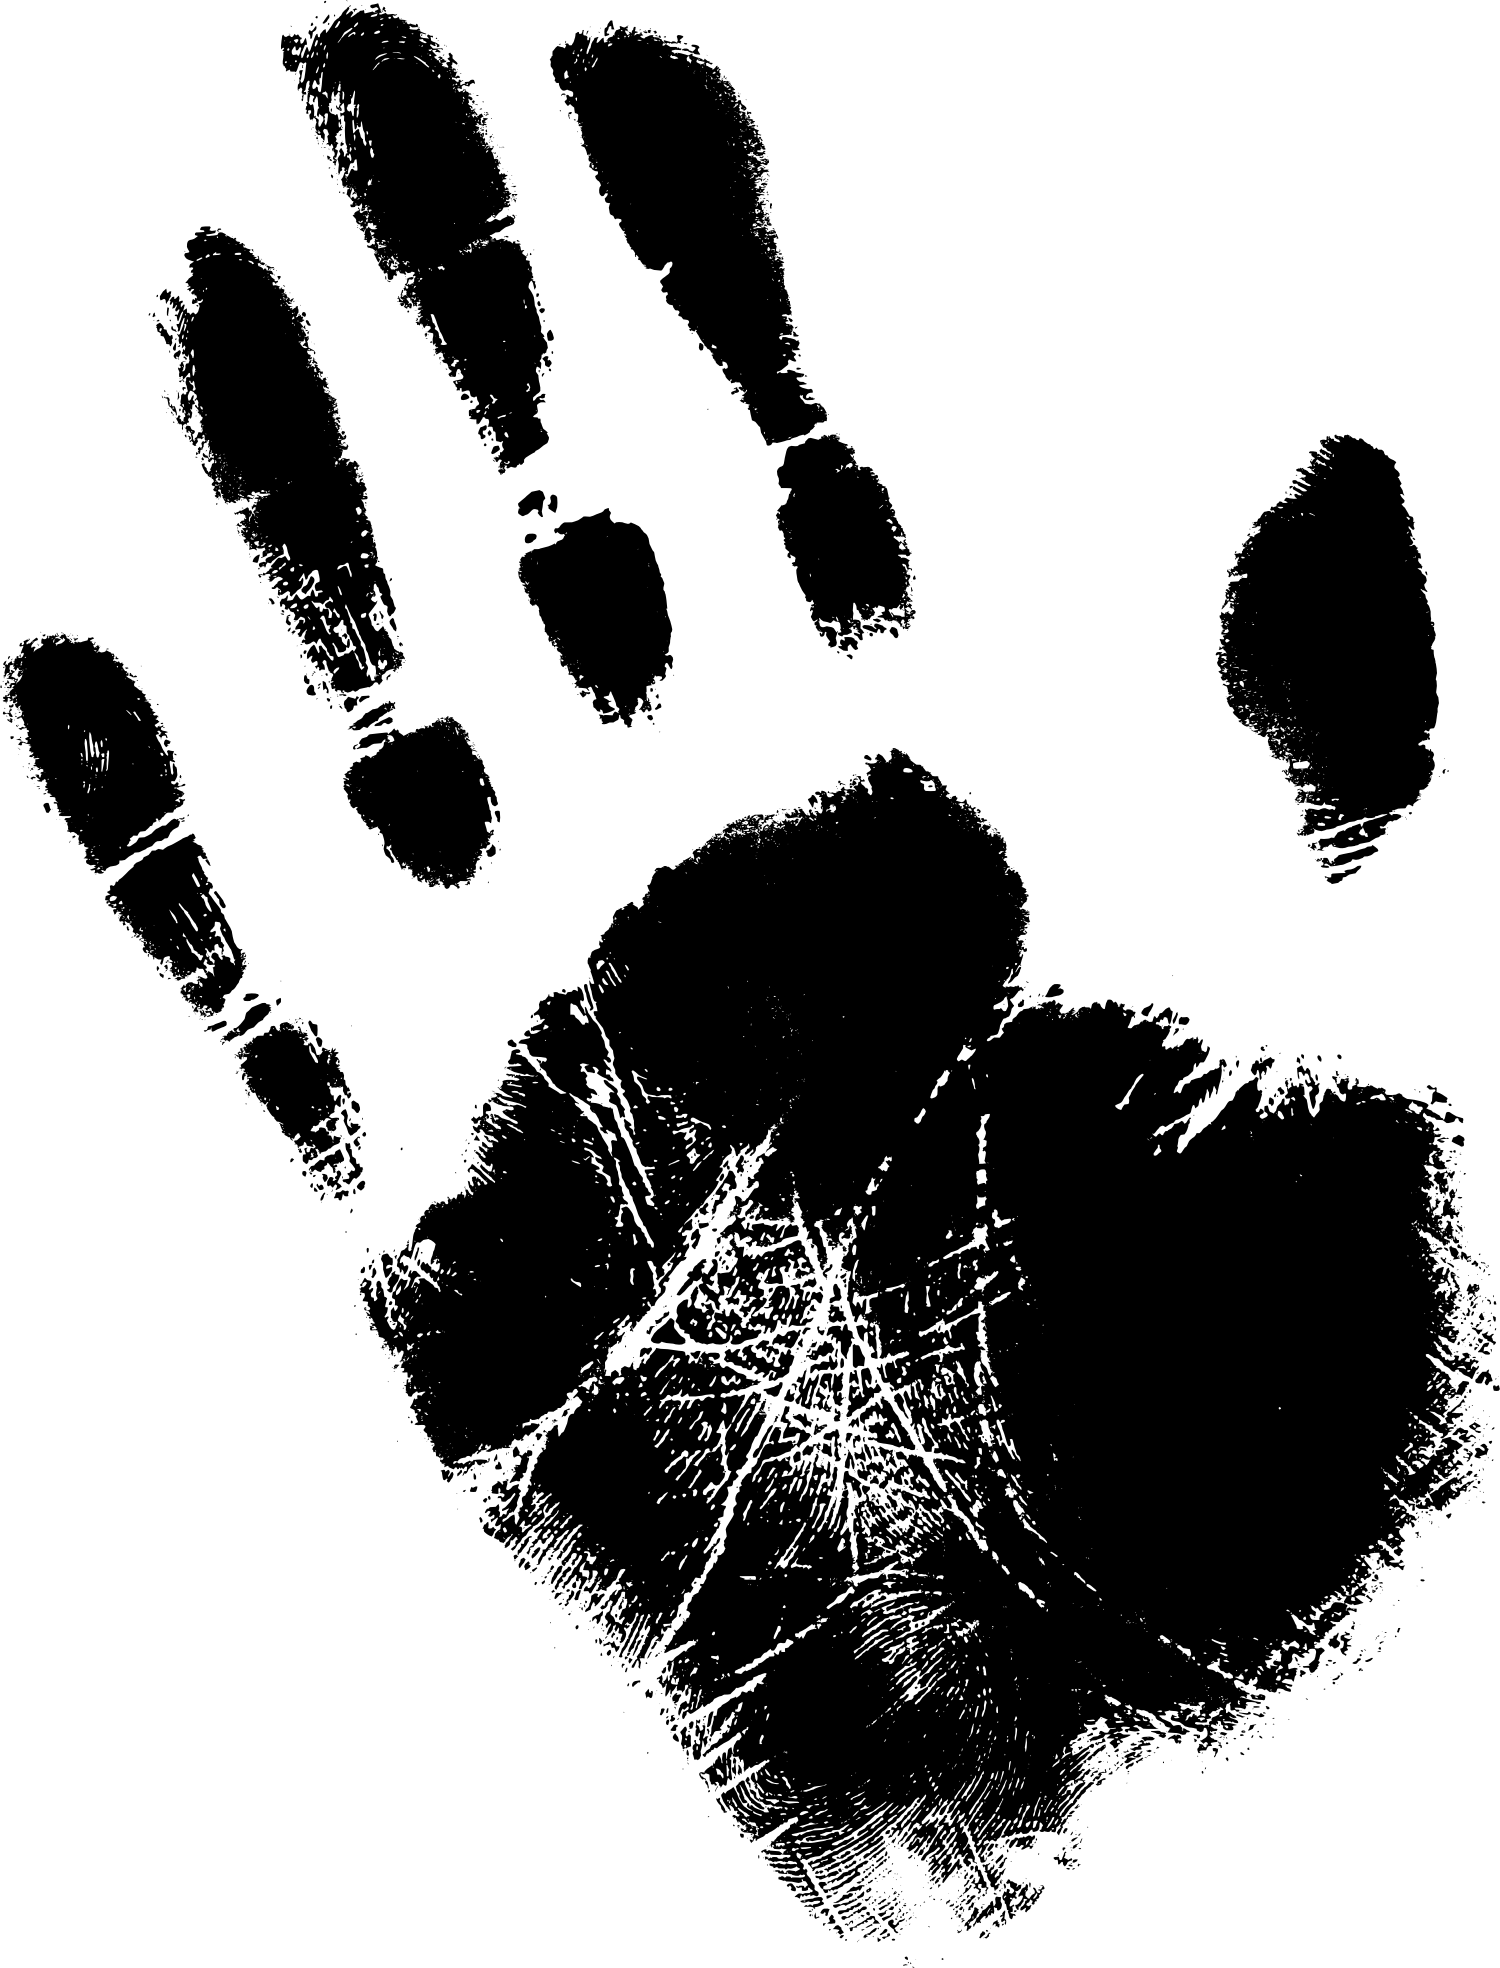 Handprint transparent digital. Free photo hand print